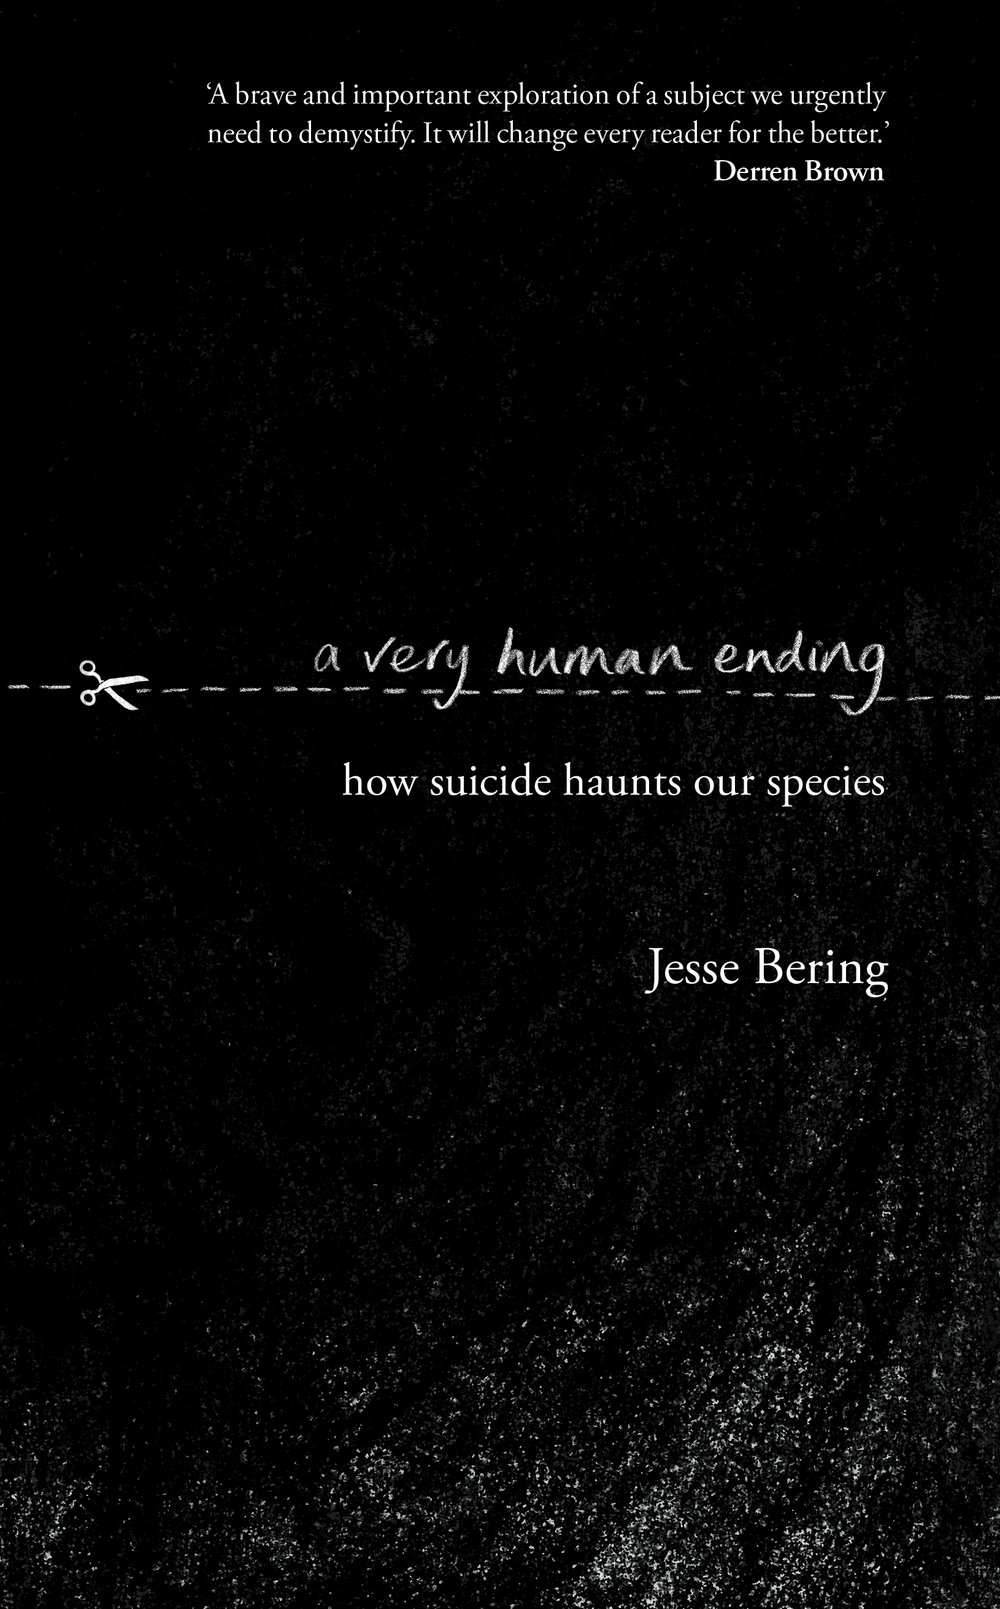 A Very Human Ending: How Suicide Haunts our Species  UK edition (August 2018) Publisher:  Doubleday  ISBN: 978-0857524515